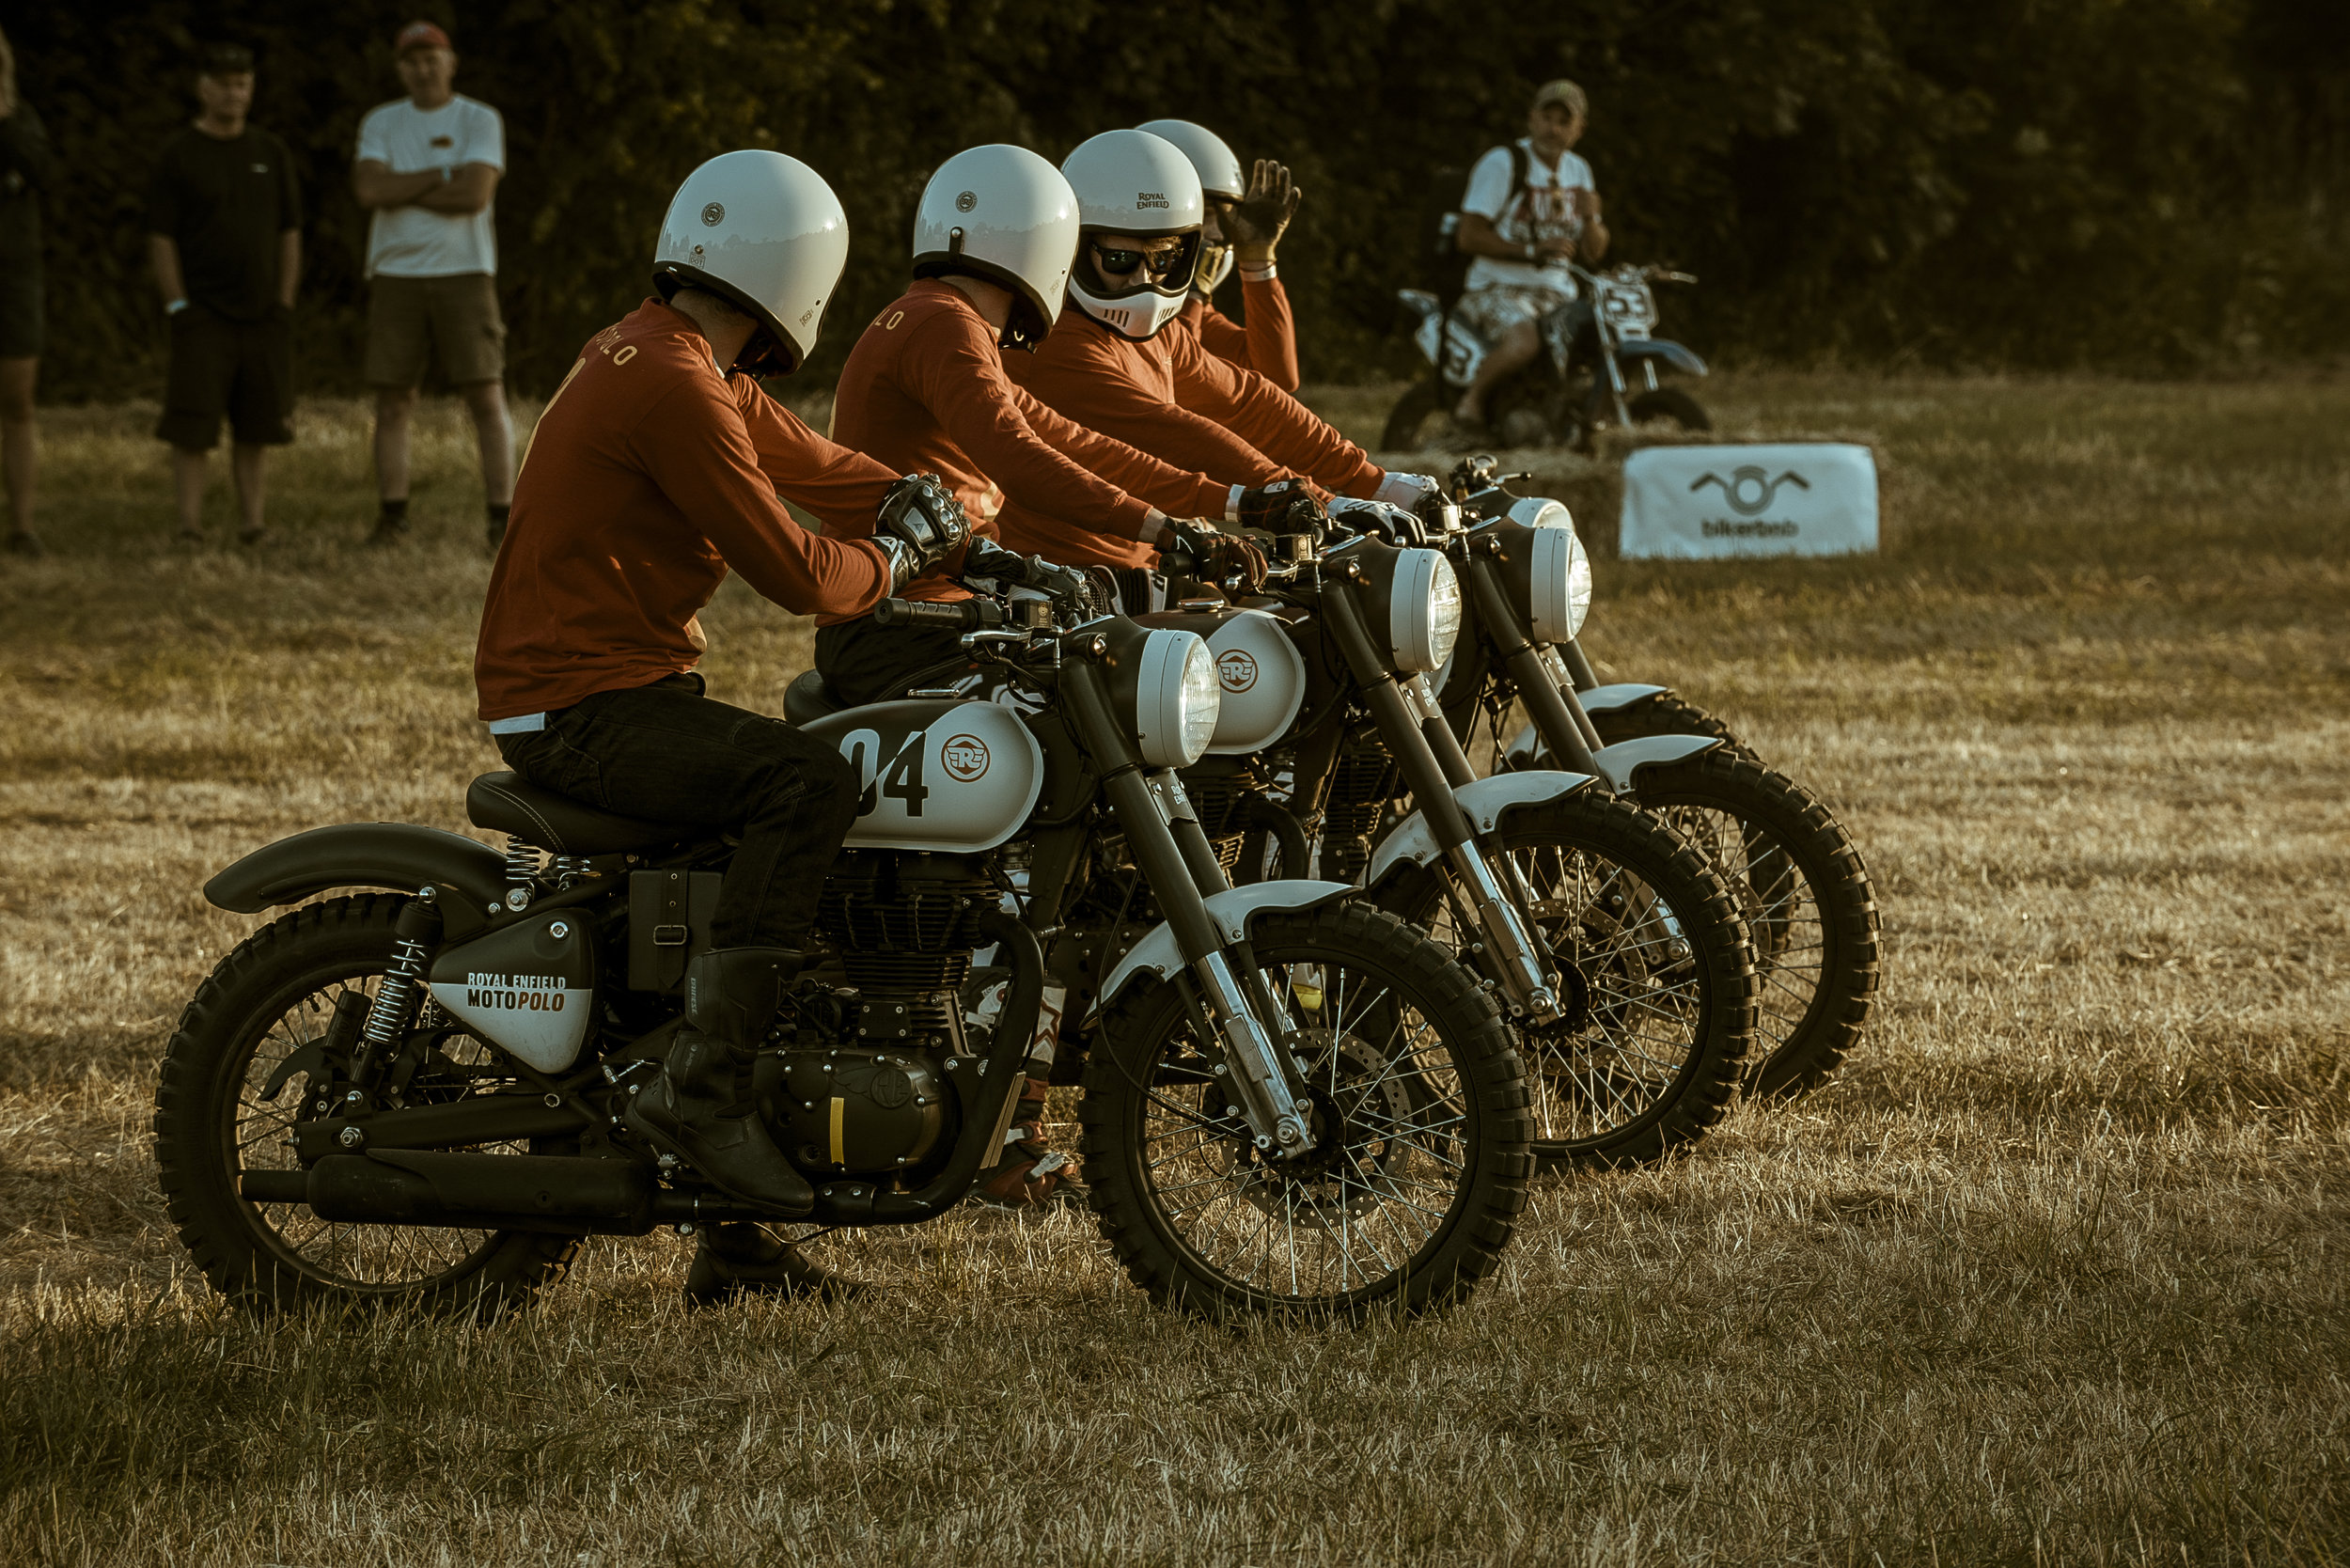 The Royal Enfield motopolo team lined up.